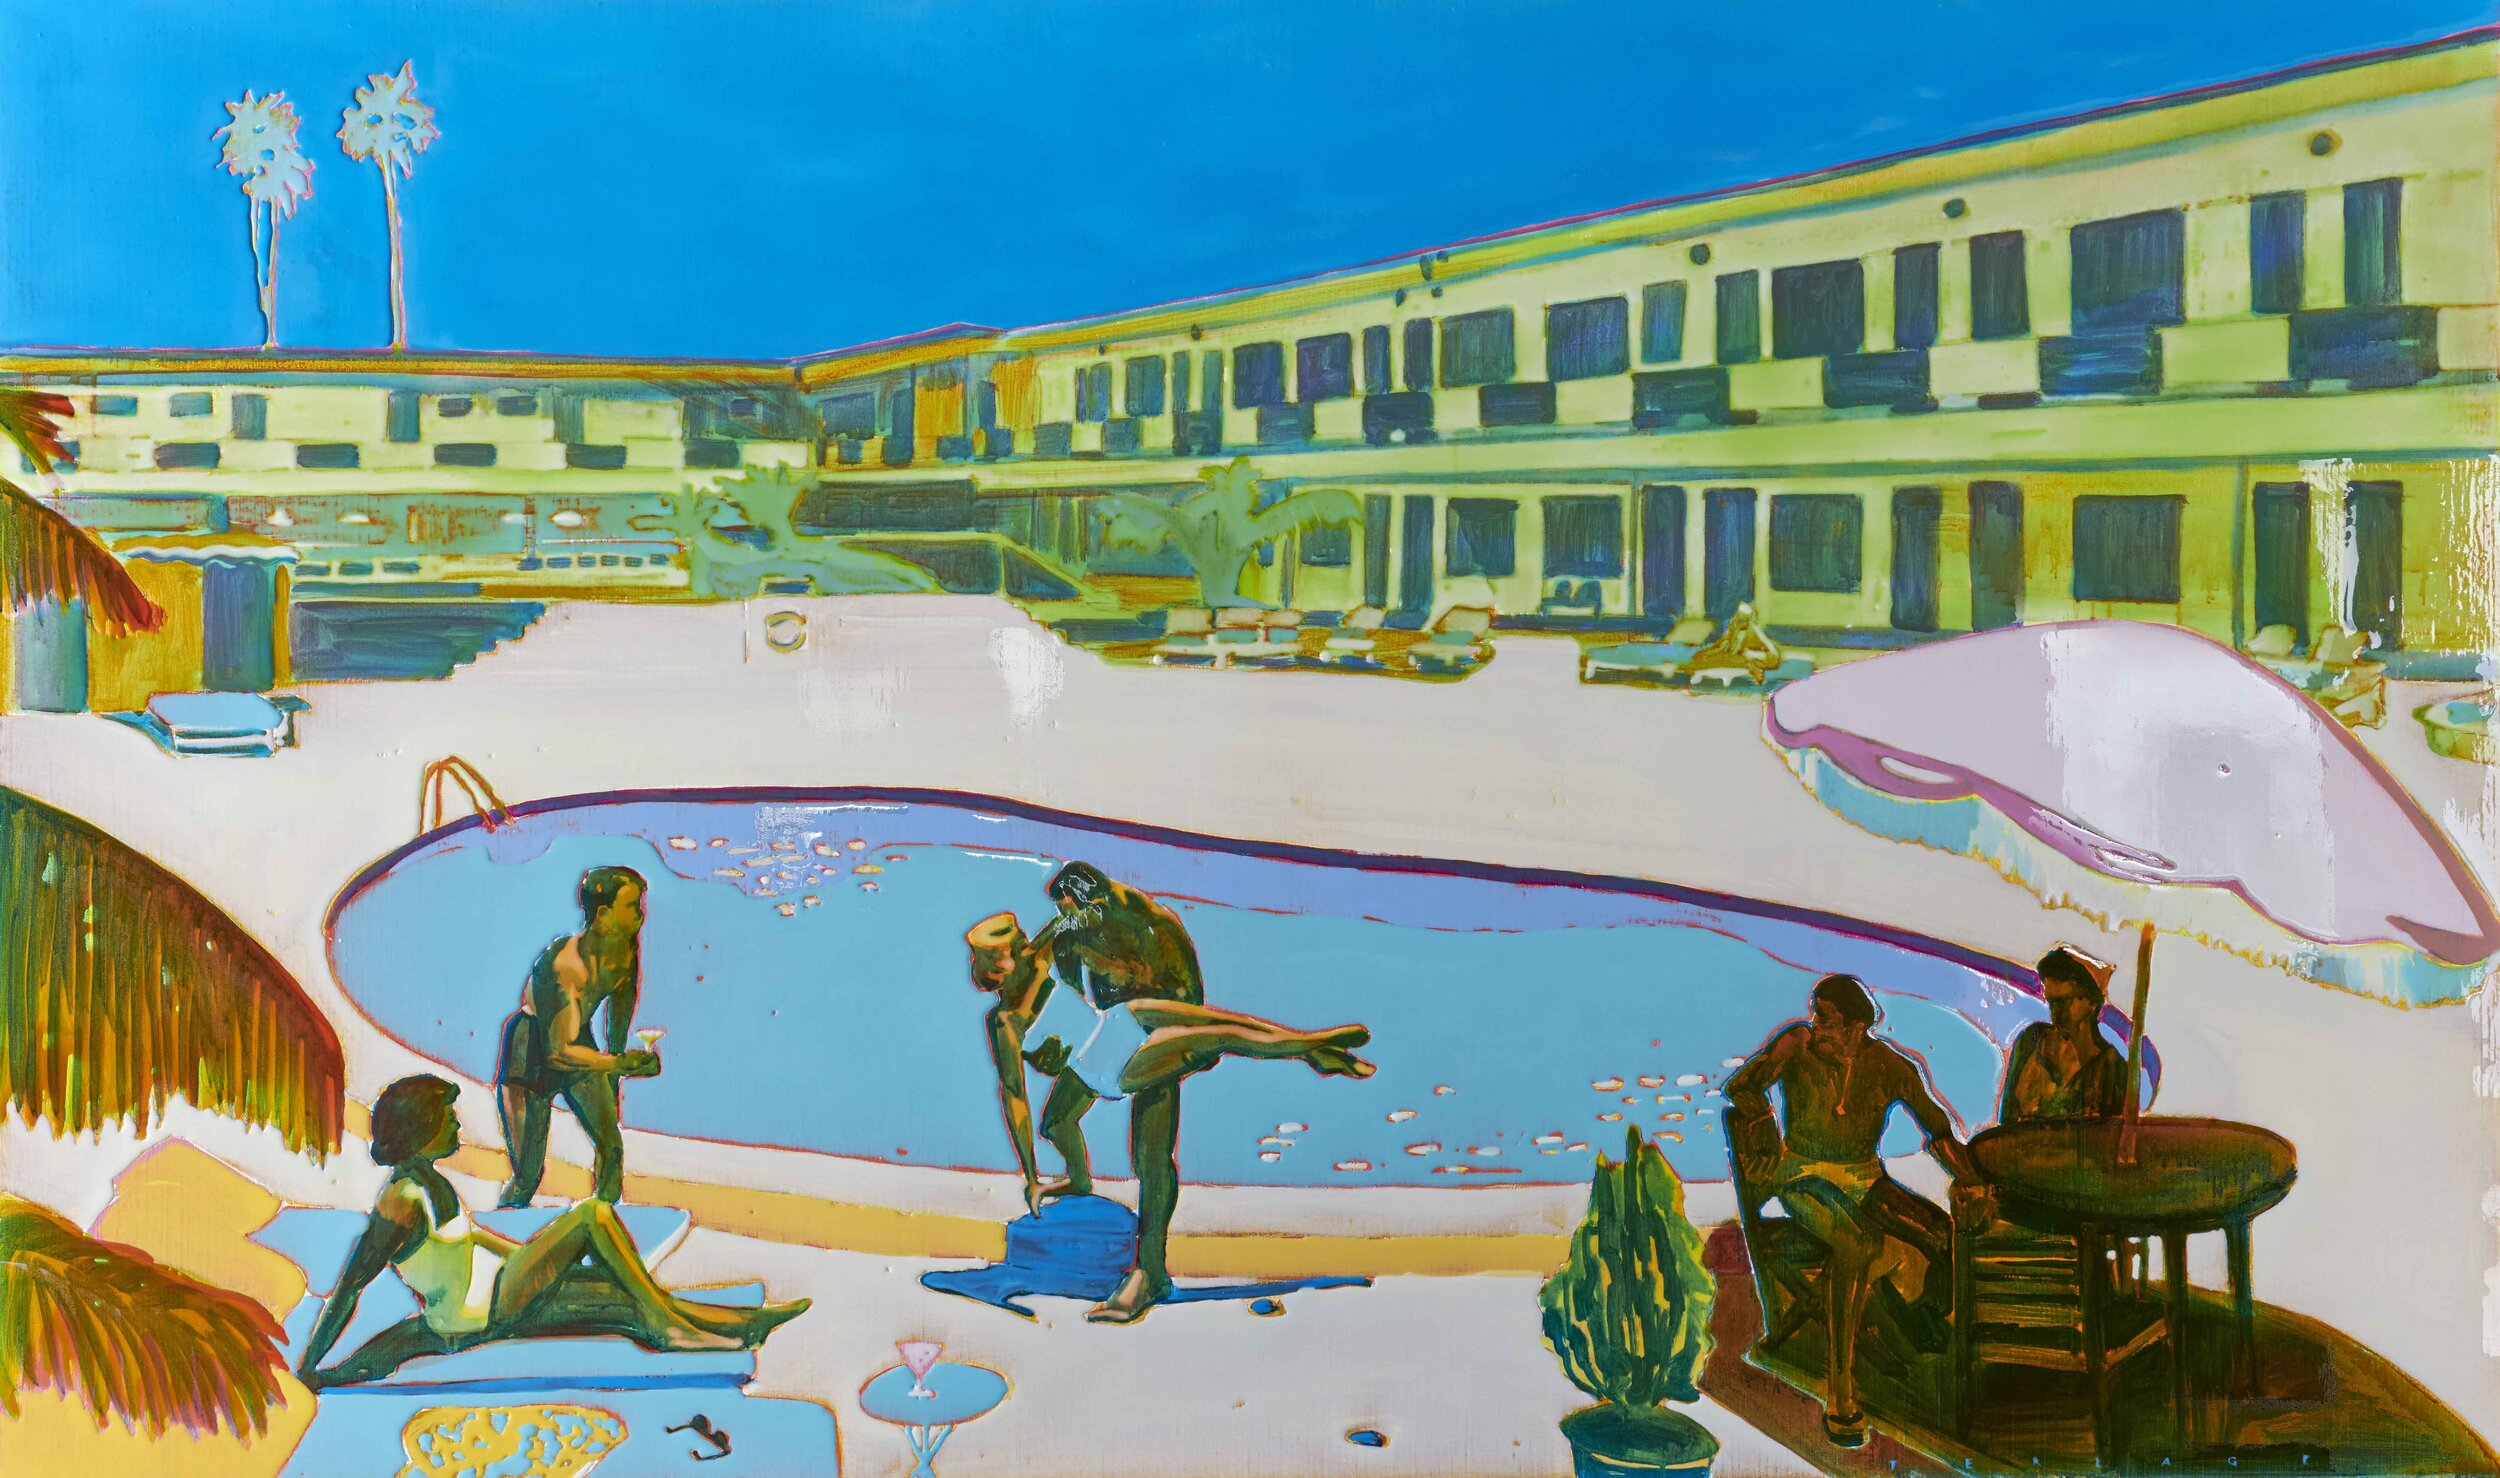 WHATEVER IT TAKES  120 X 200 cm acrylic and epoxy on canvas